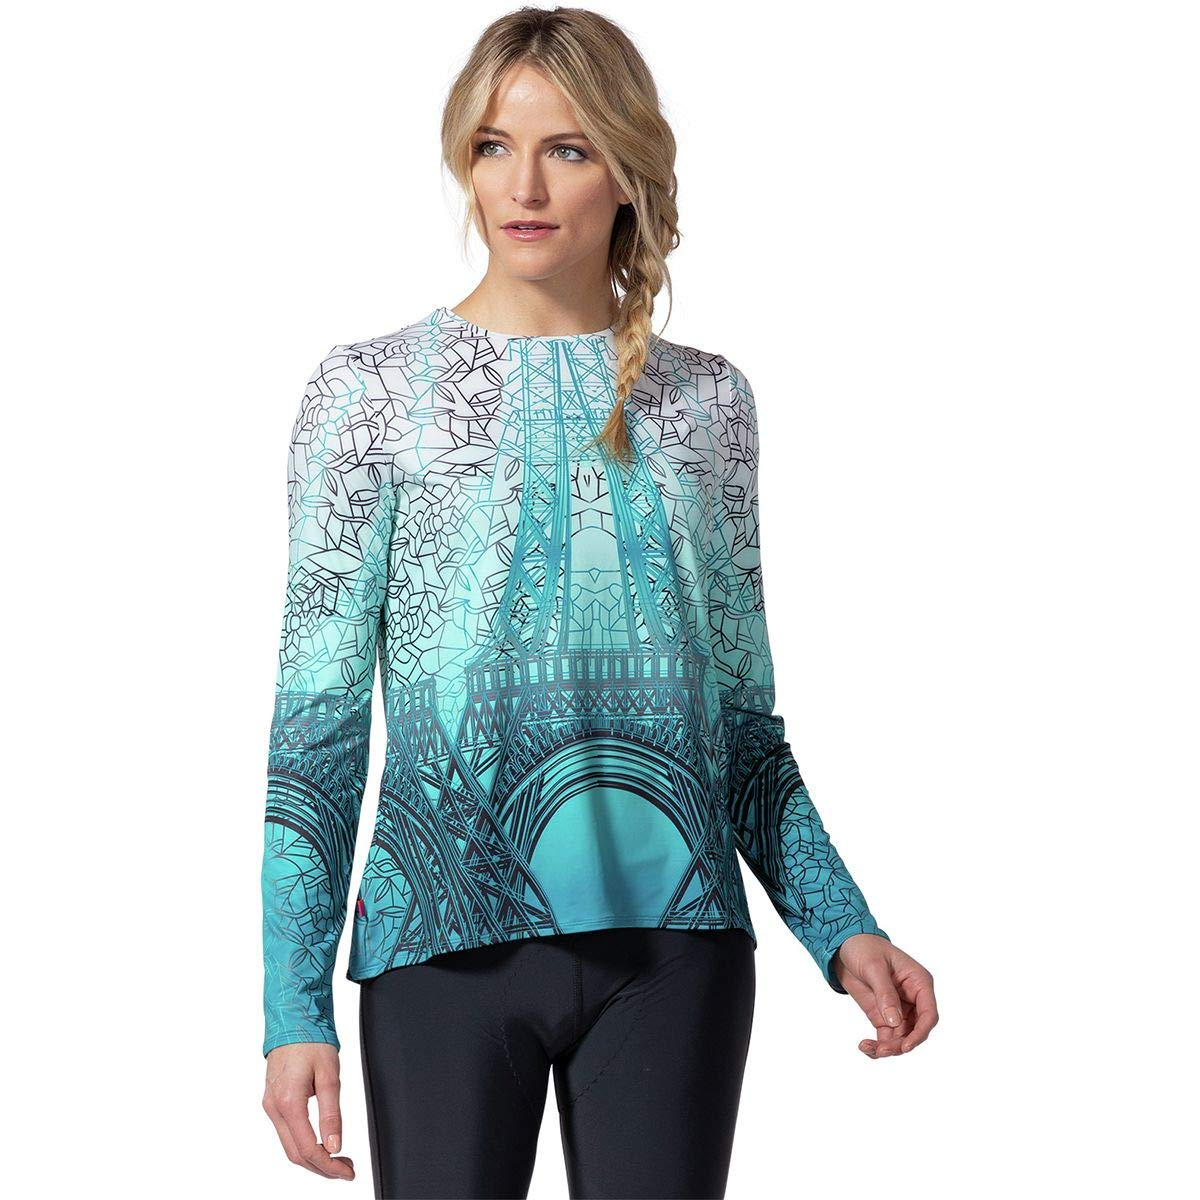 Terry Bicycles Soleil Flow Long-Sleeve Jersey - Women's Eiffel, S by Terry Bicycles